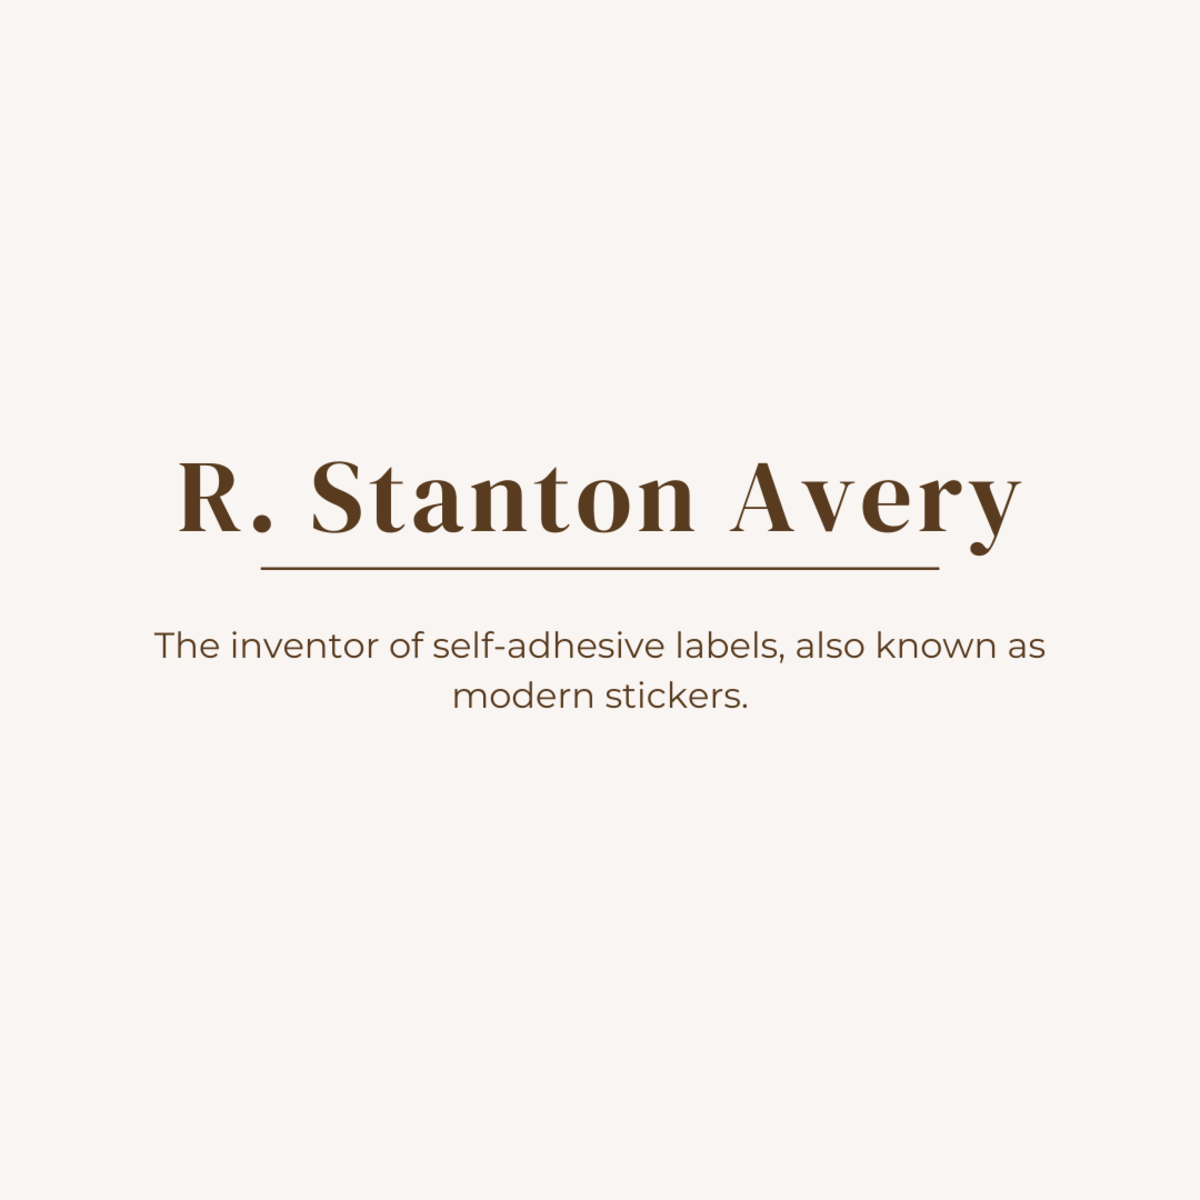 R. Stanton Avery – The Inventor of Stickers